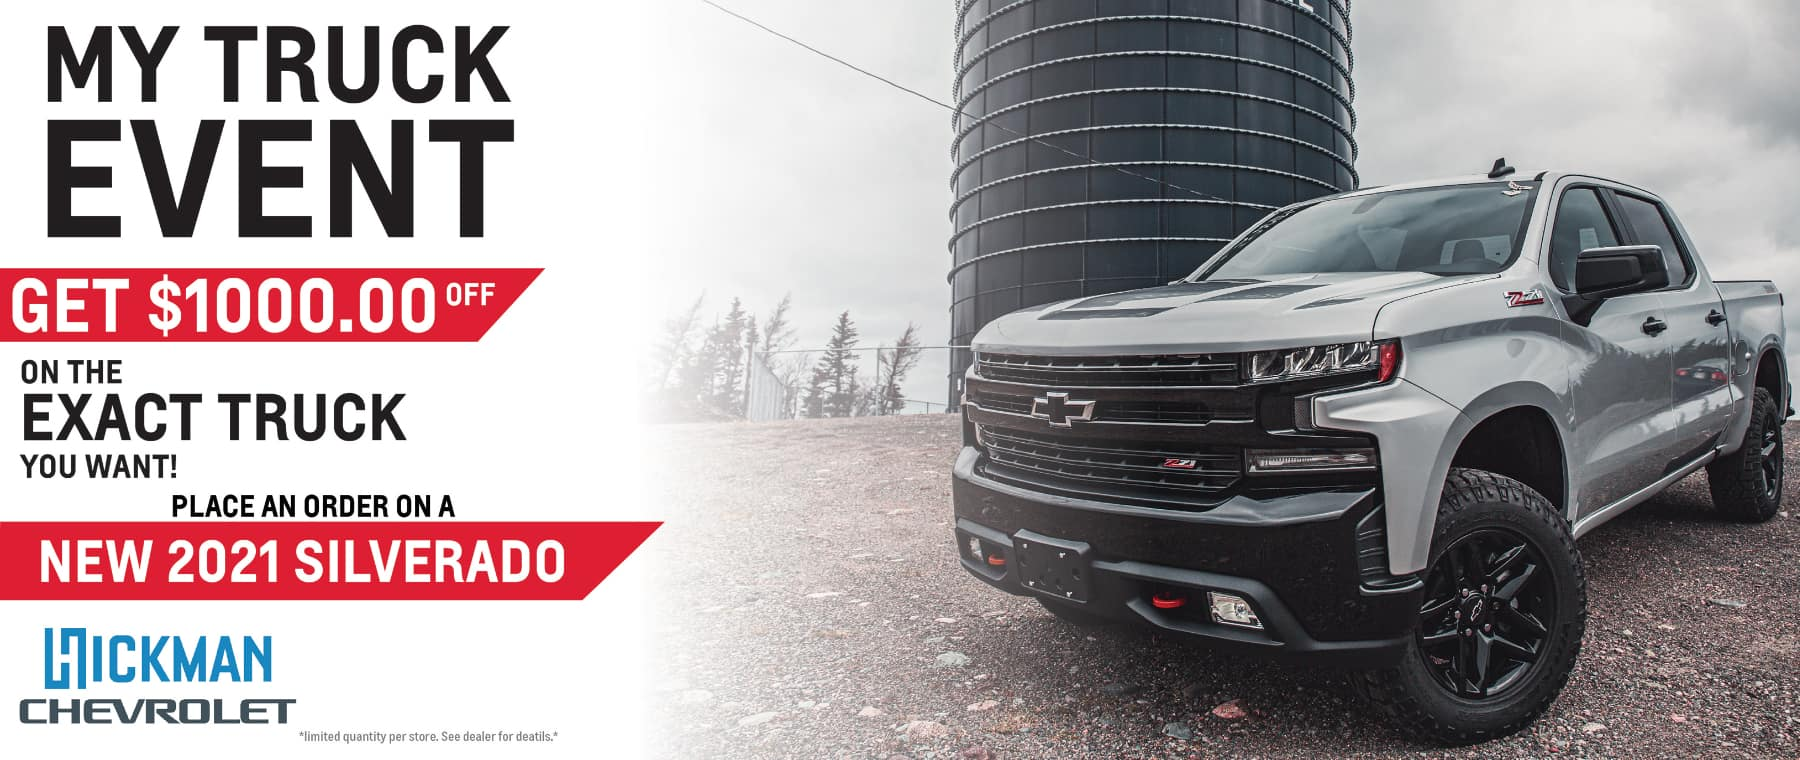 My Truck Event 2 – Website – 1800×760 – Chev – THIS ONE